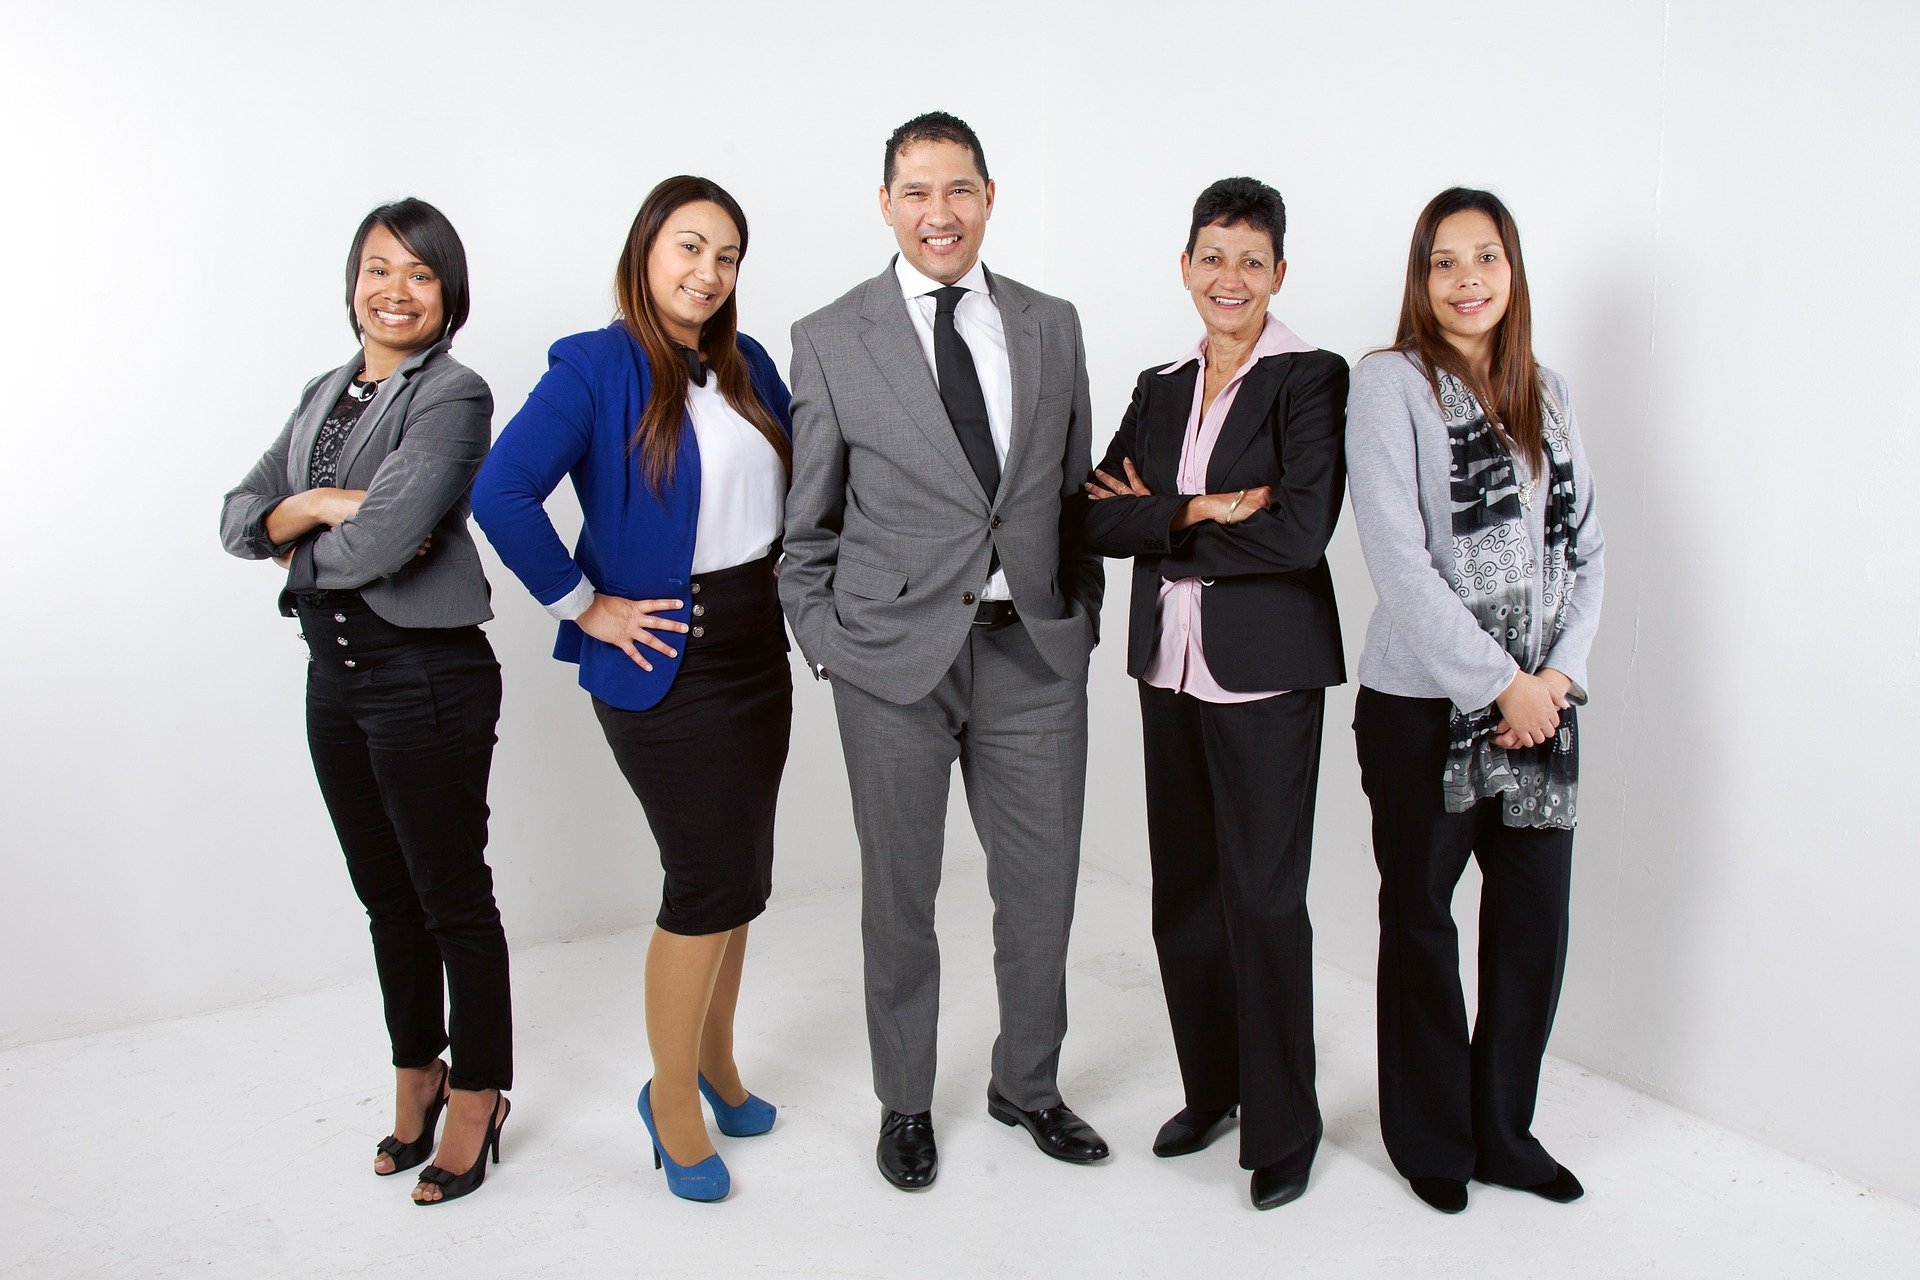 Group of young professionals doing good in their community